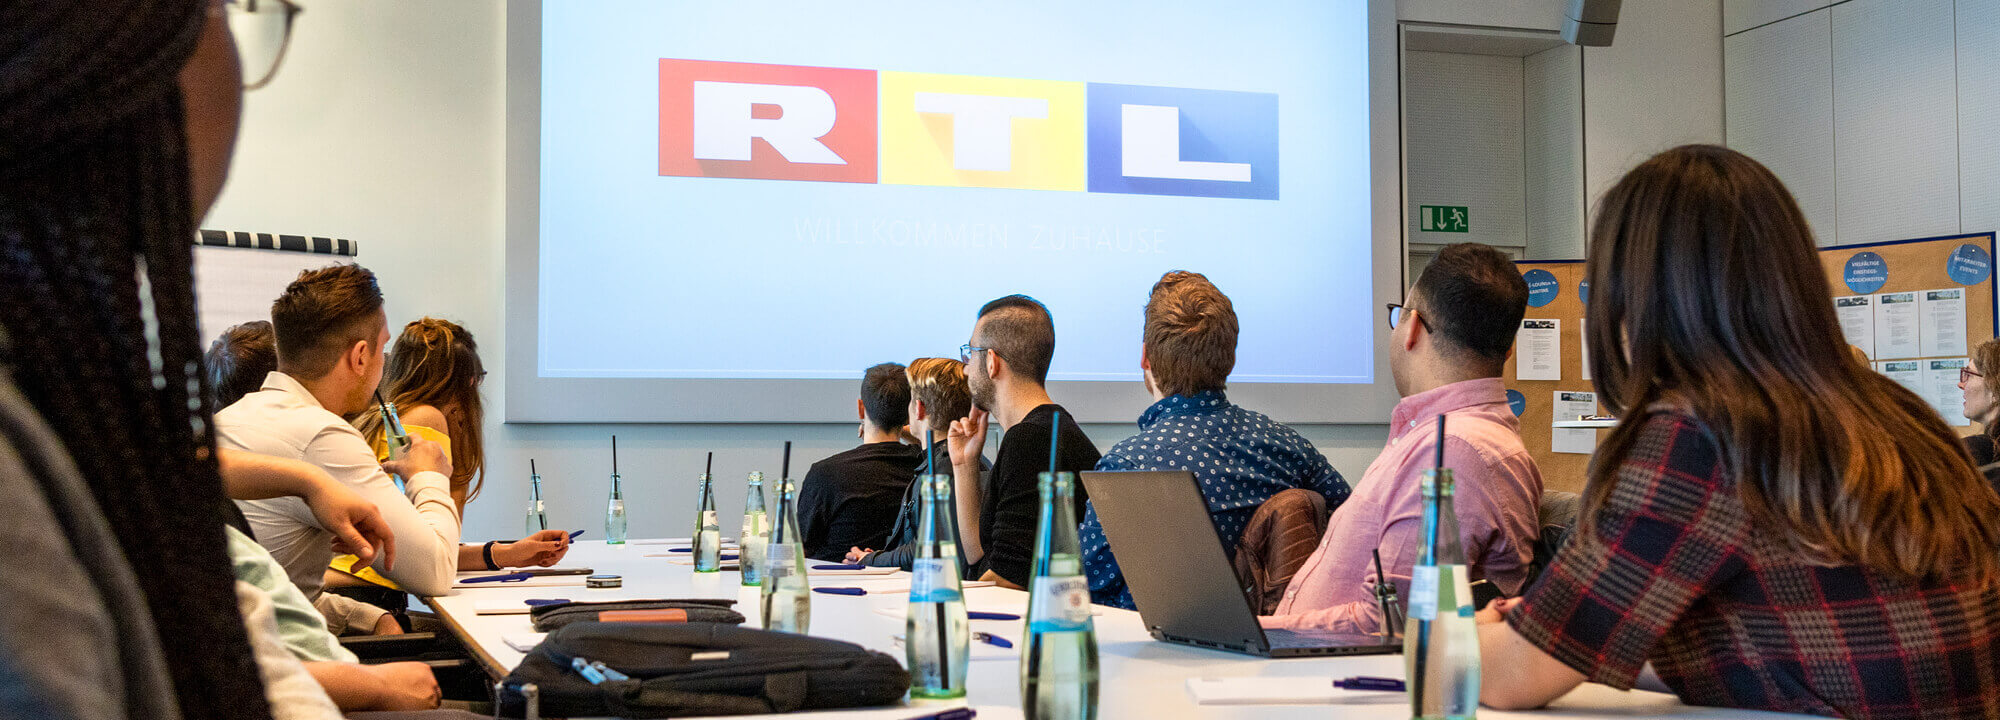 business-project-mit-mediengruppe-rtl